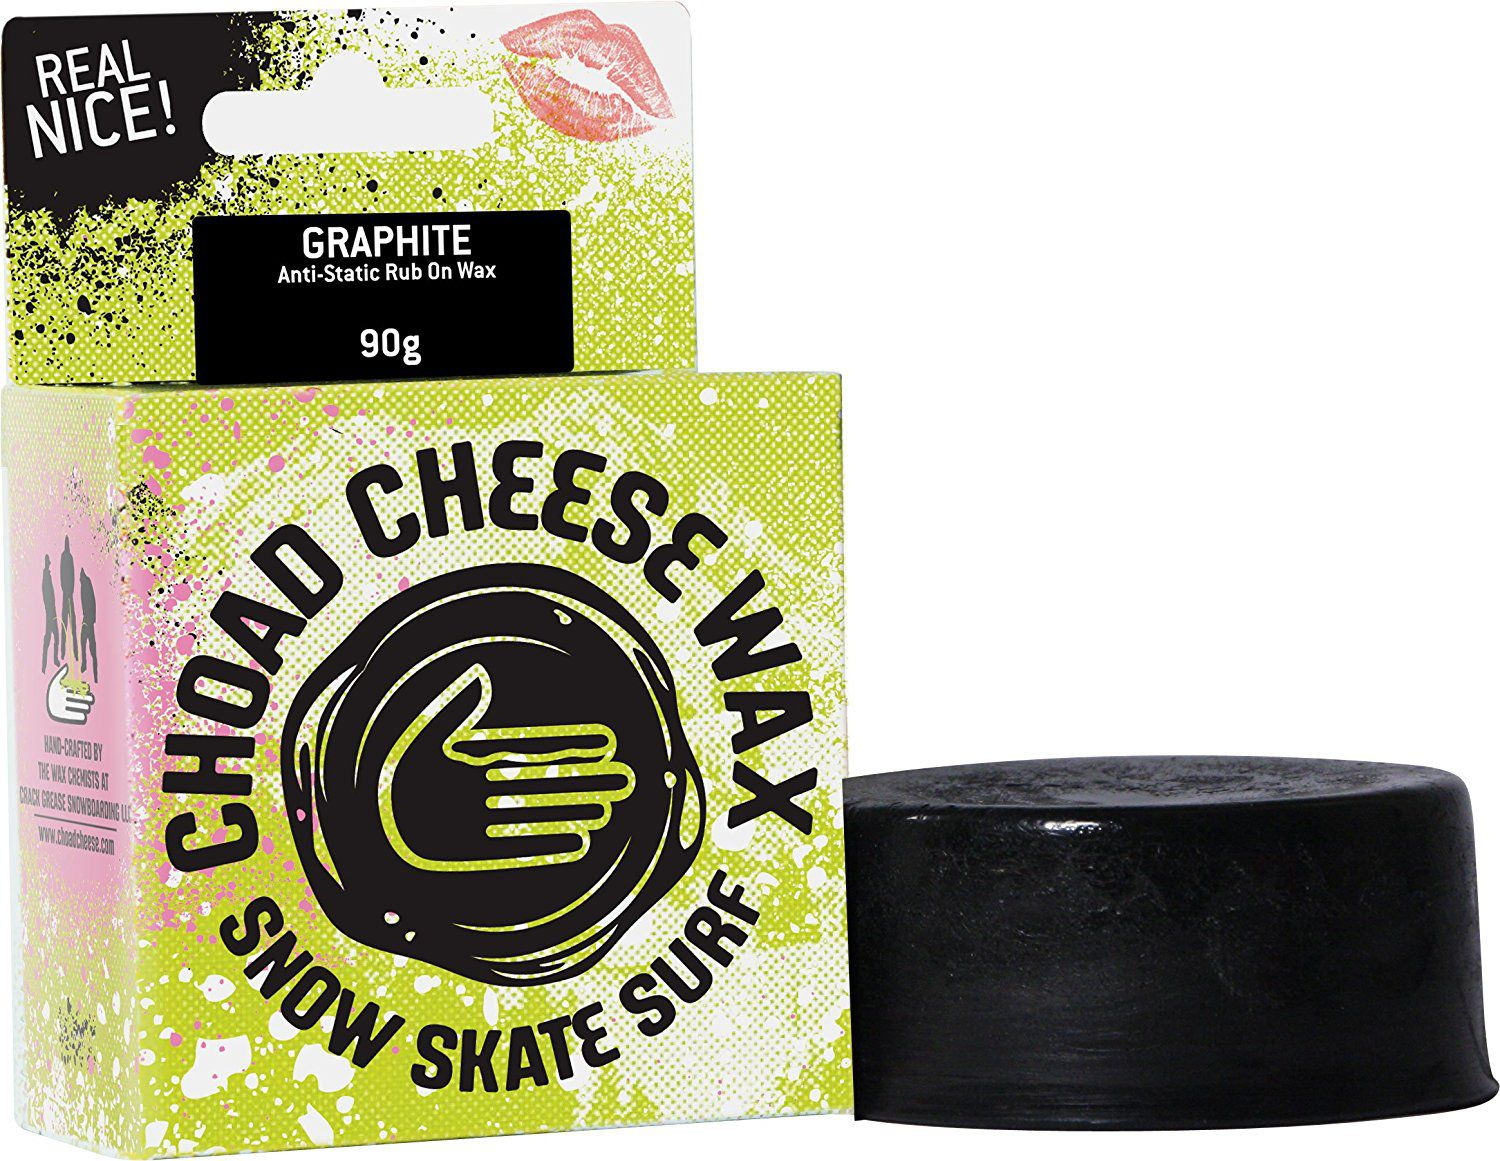 The 7 Best Ski And Snowboard Wax To Buy In 2018